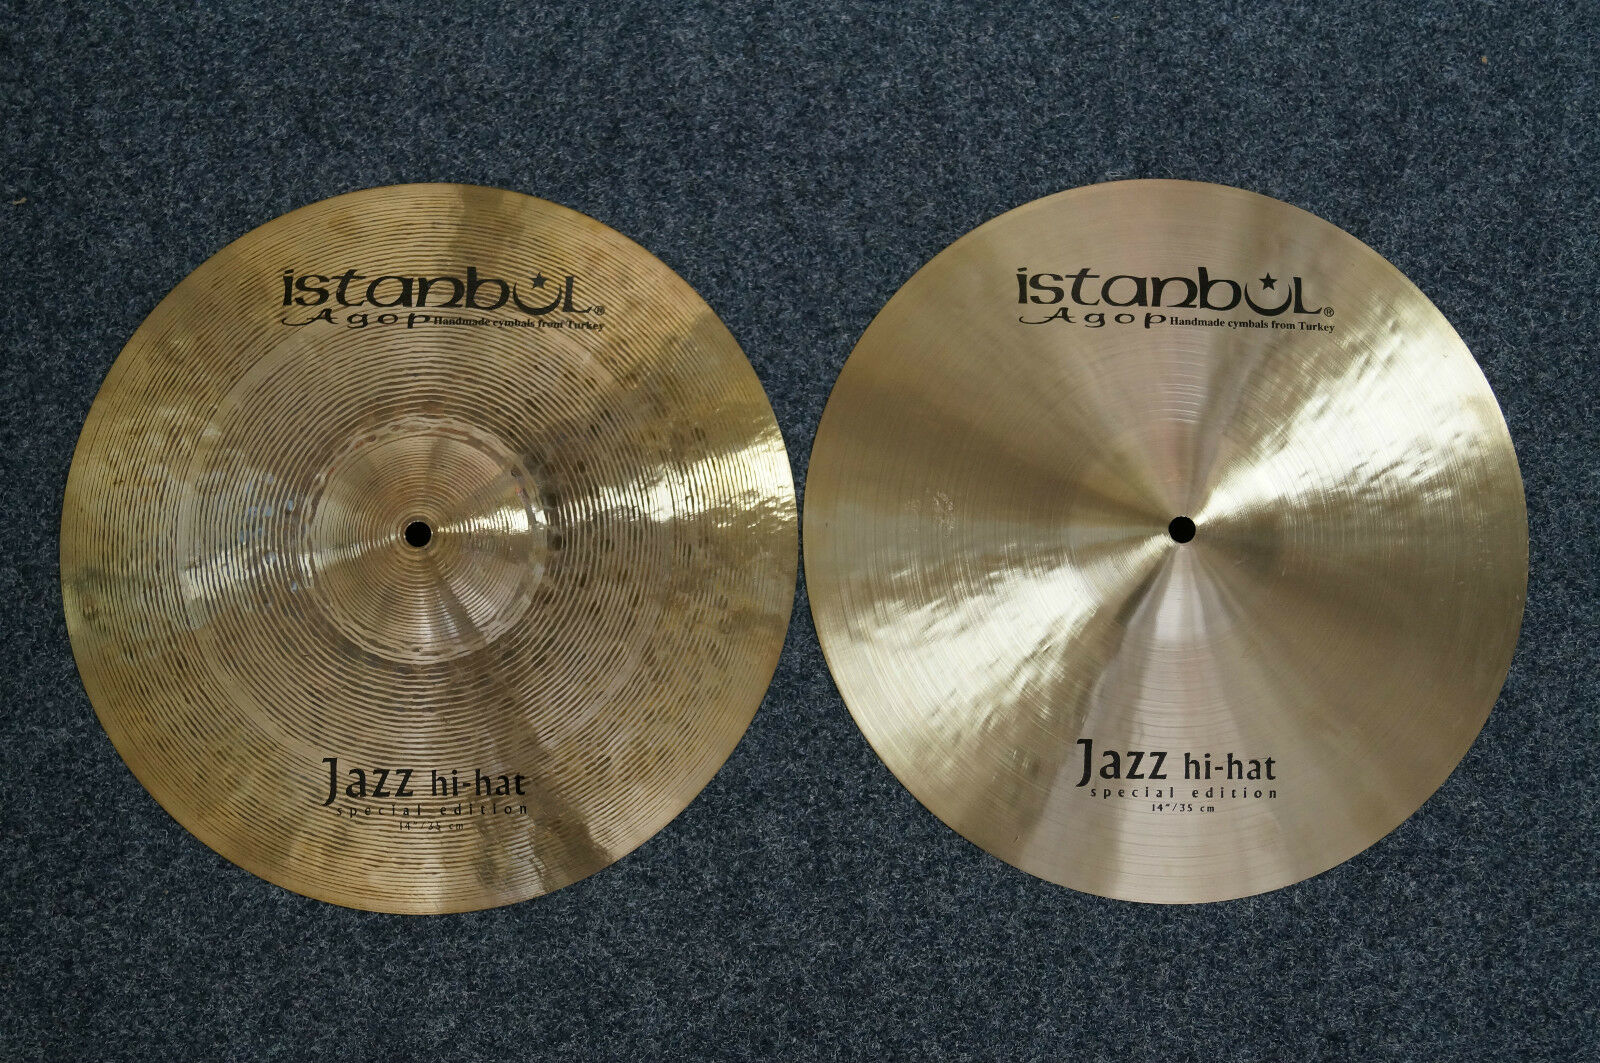 Istanbul Agop Special Edition Jazz Hihat 14